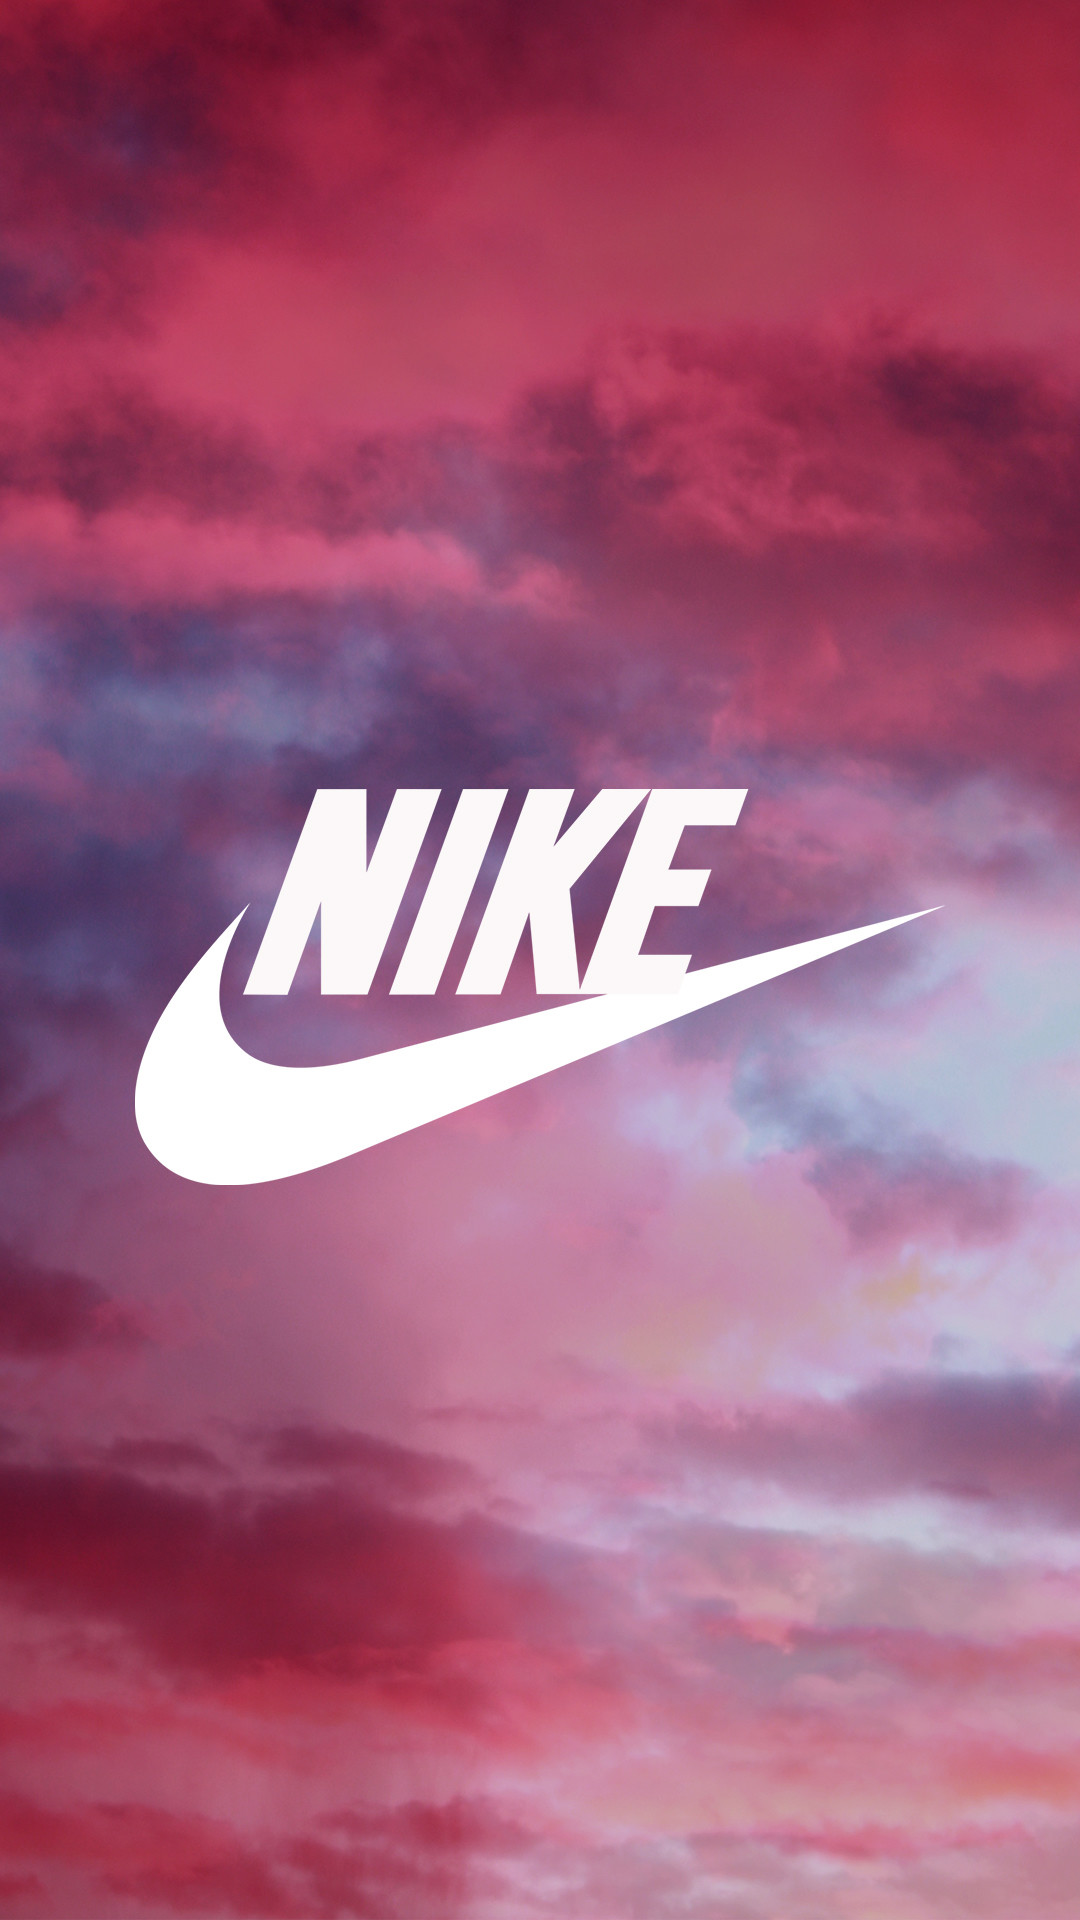 Nike basketball background